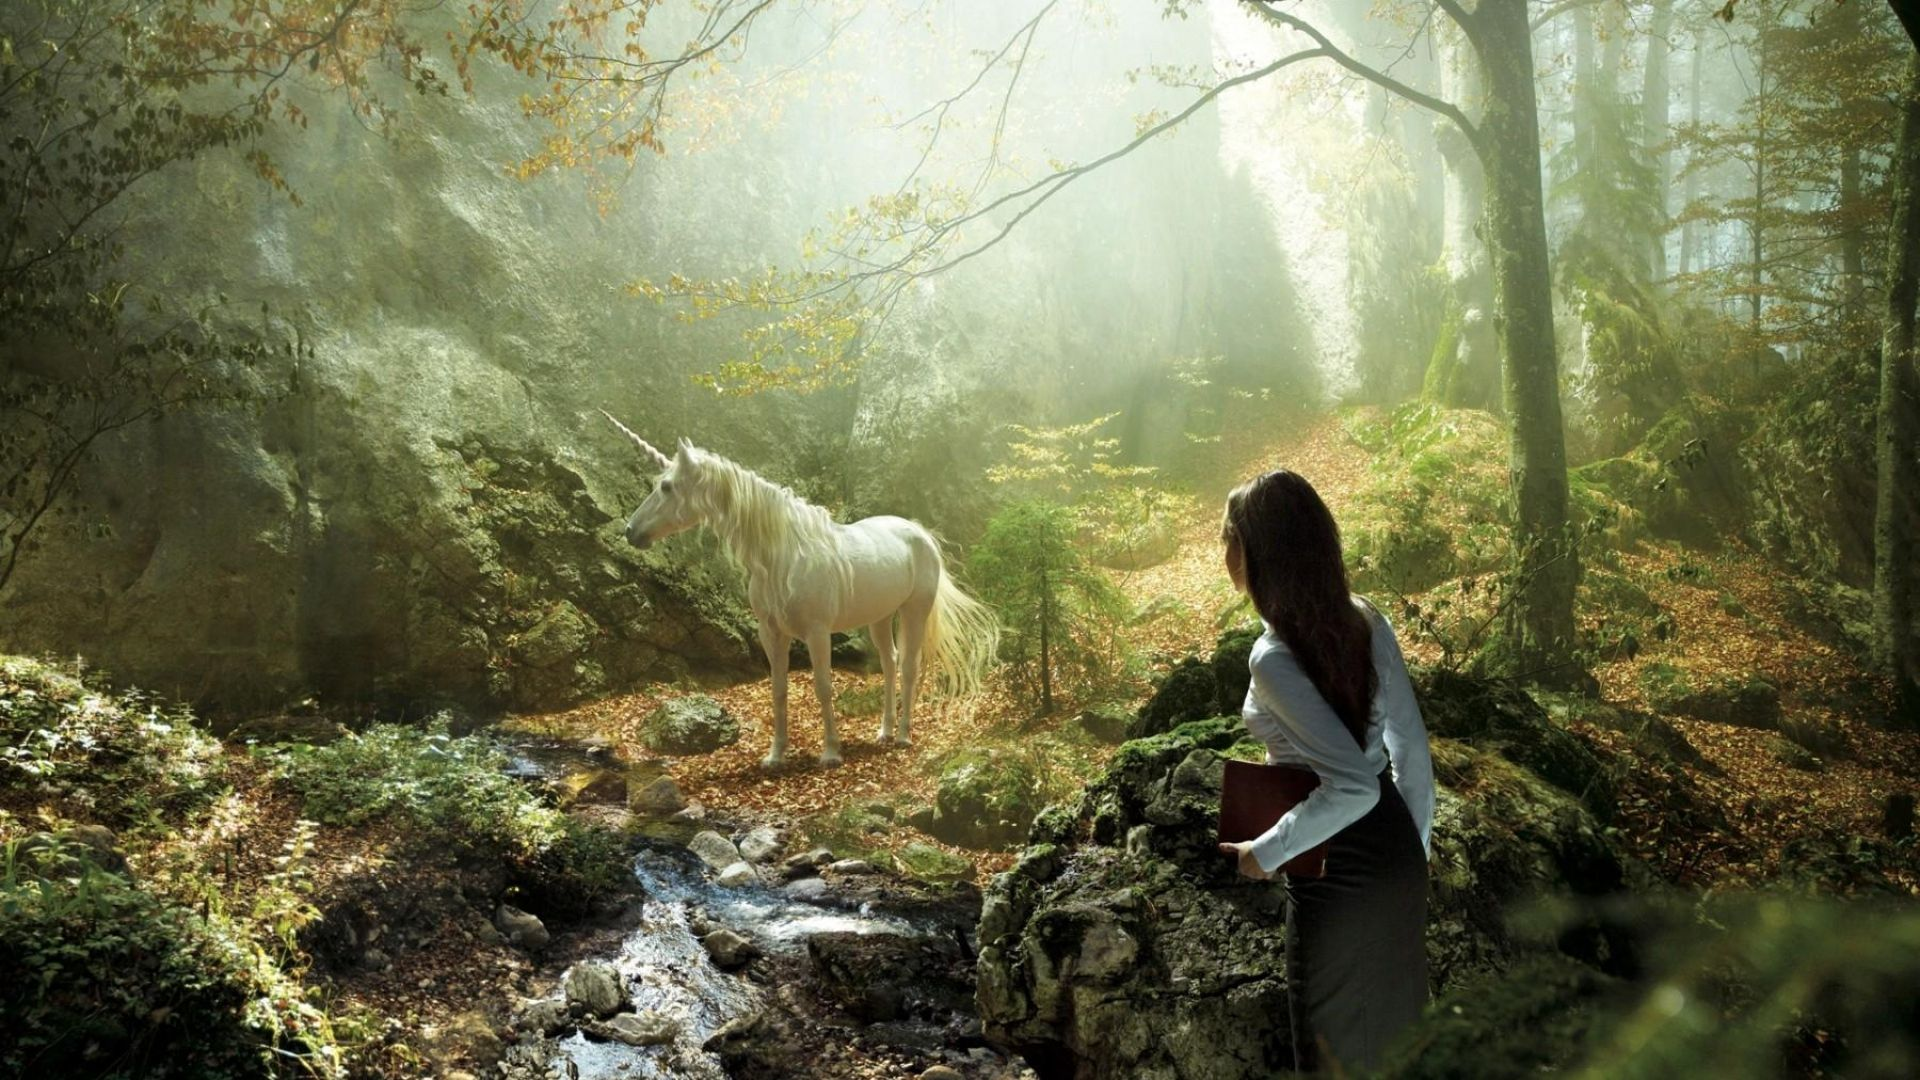 Unicorn pictures 40 high quality unicorn wallpapers full hd unicorn - Download Wallpaper 1920x1080 Unicorn Girl Forest Nature Full Hd 1080p Hd Background